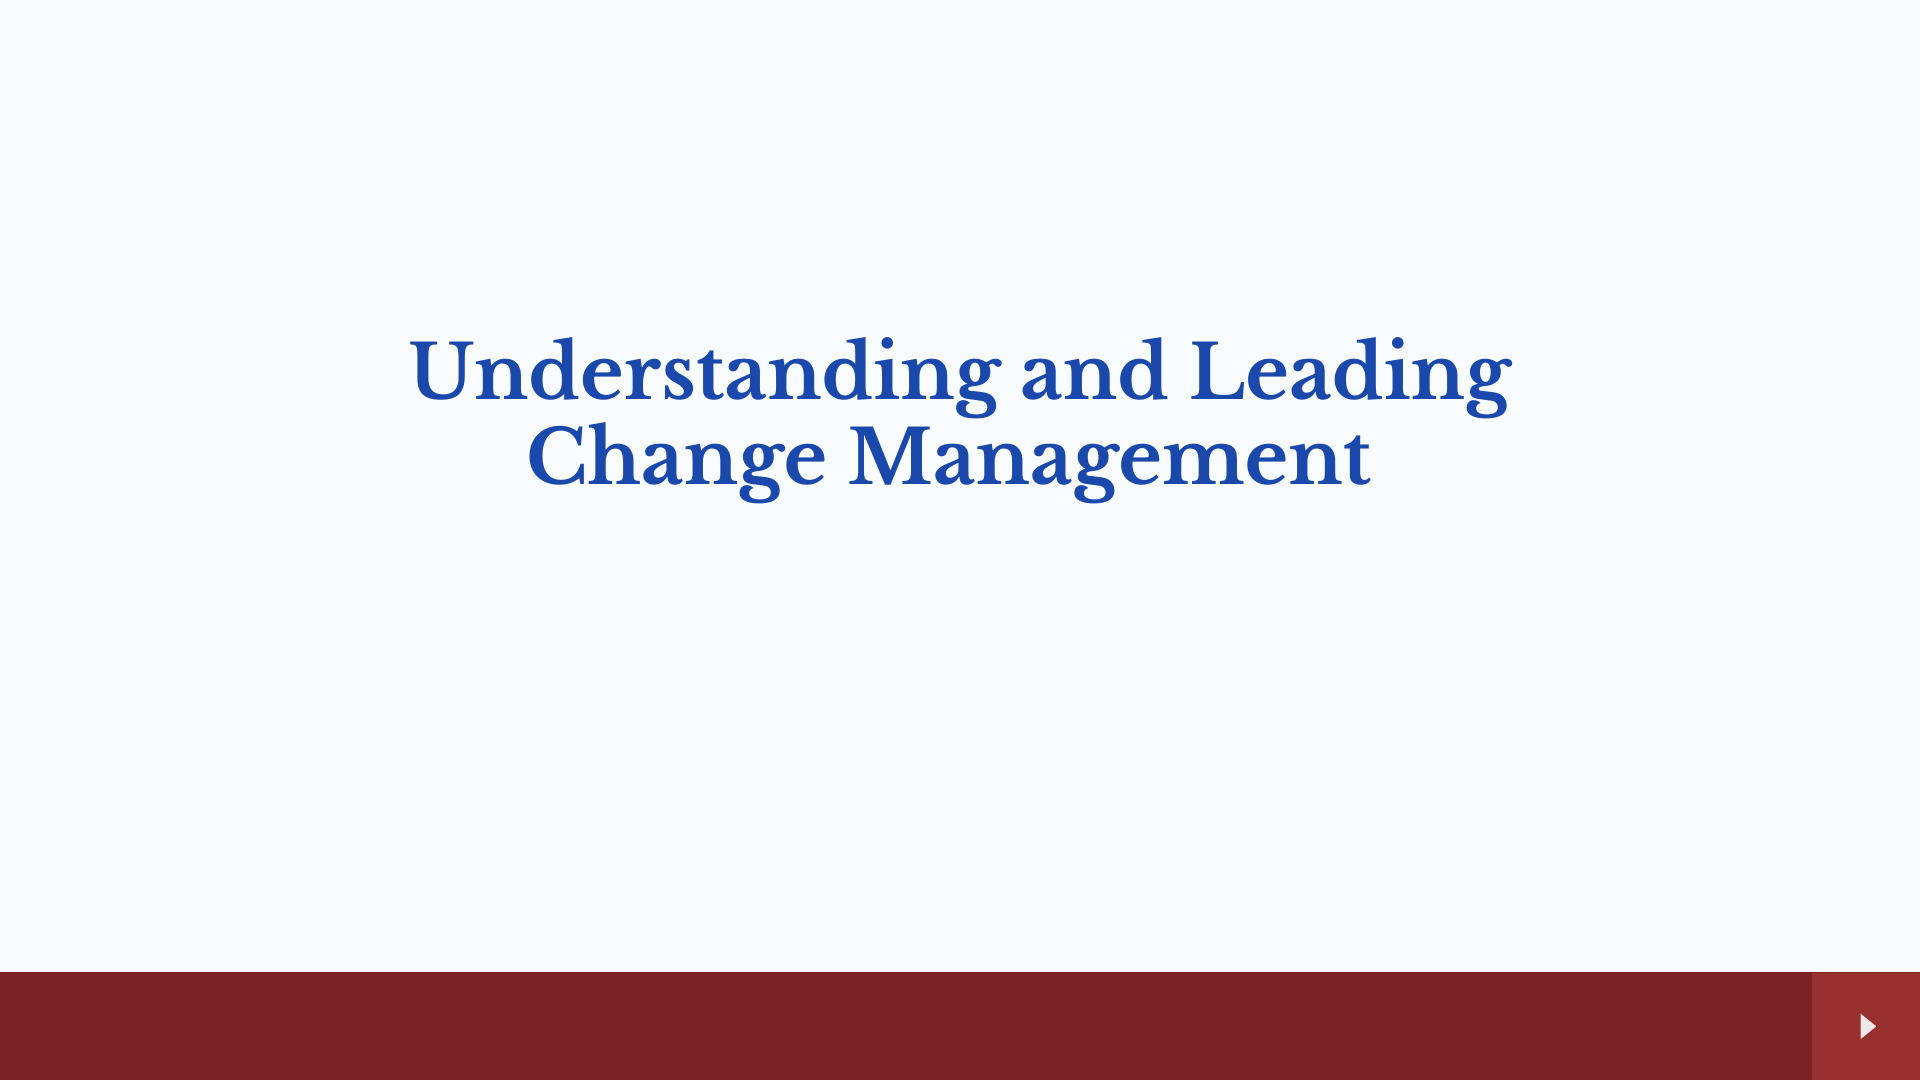 Understanding and Leading Change Management